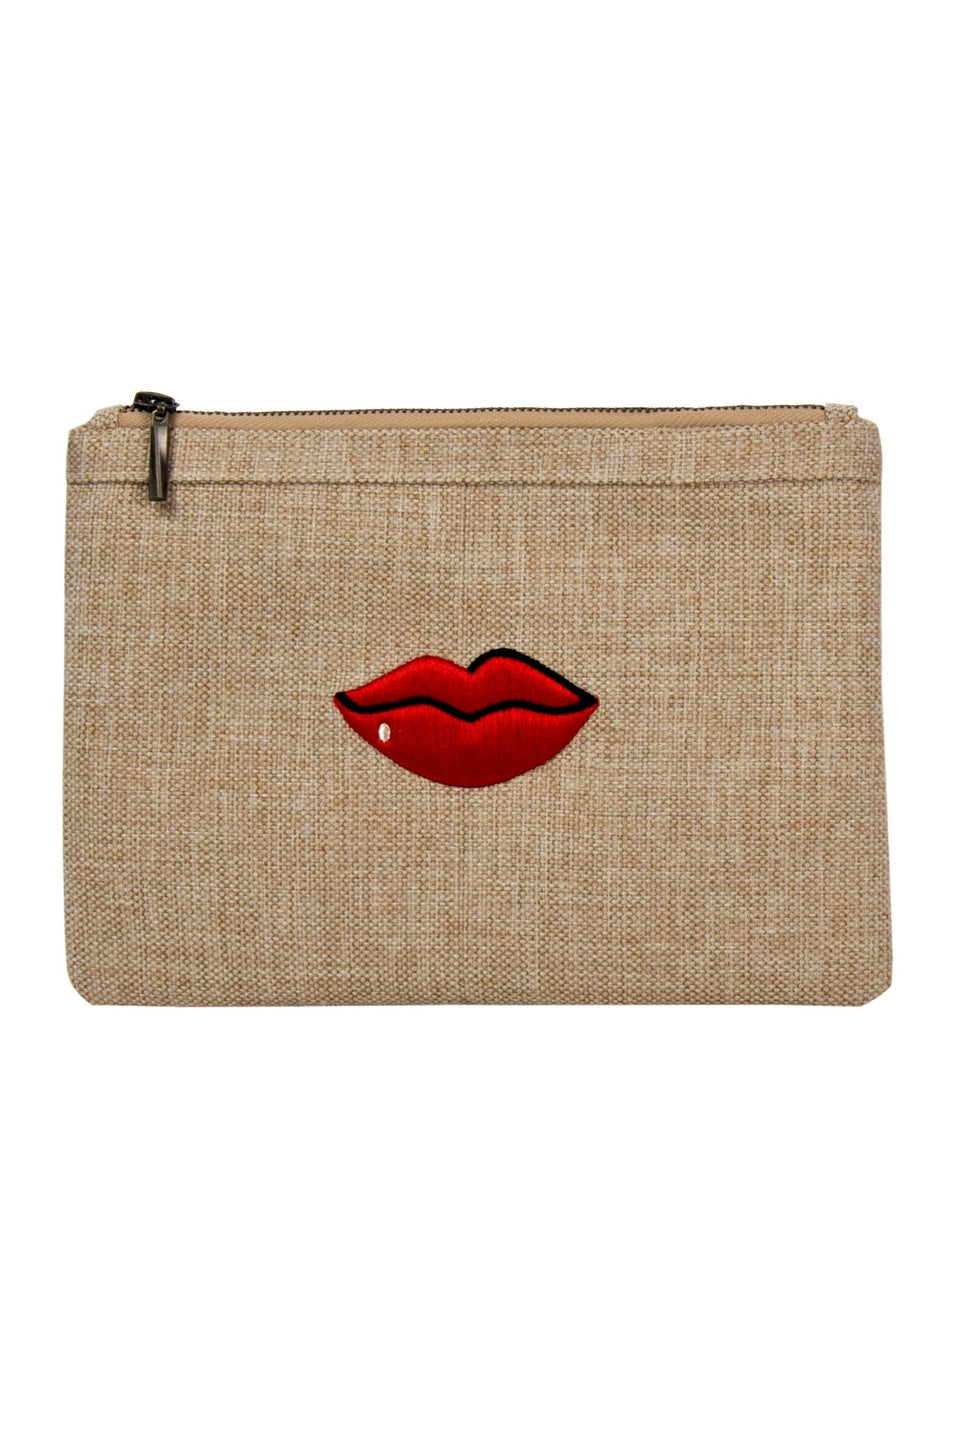 POUCH RED LIPS - MINE BAGS AND ACCESSORIES - MIRA Y MANO